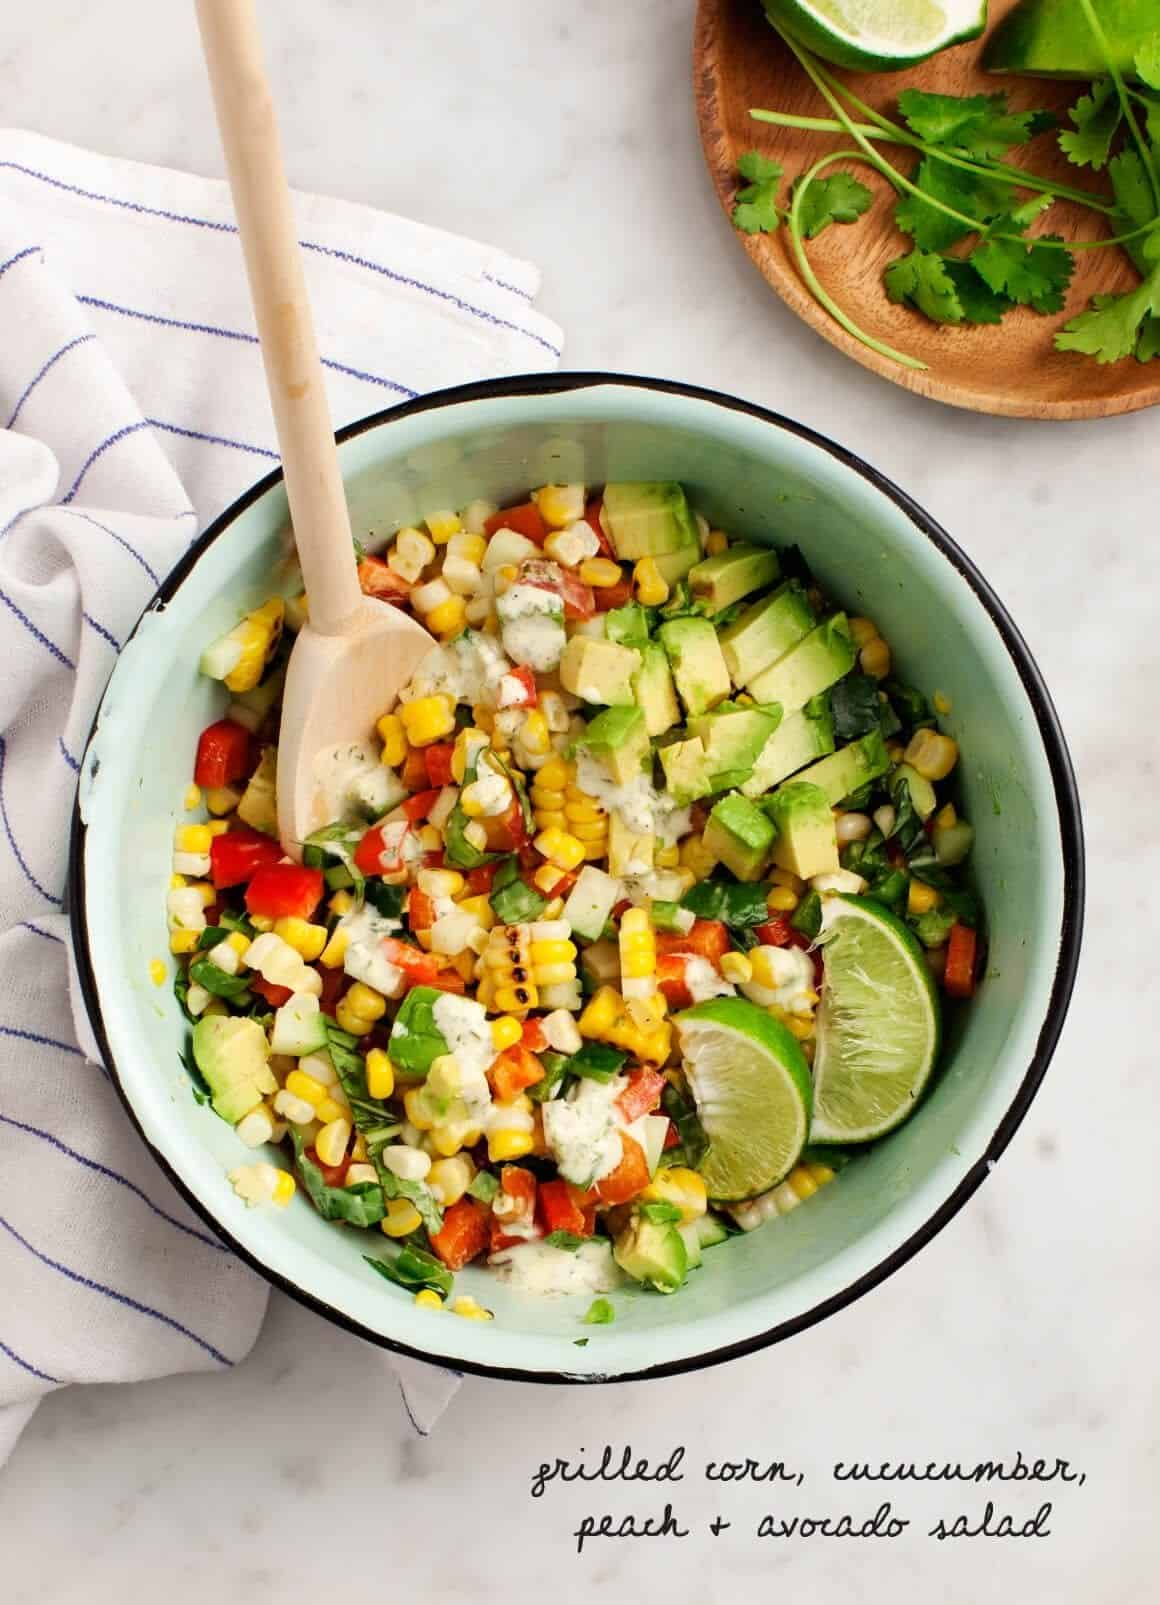 Corn, Cucumber, Peach & Avocado Salad Recipe - Love and Lemons